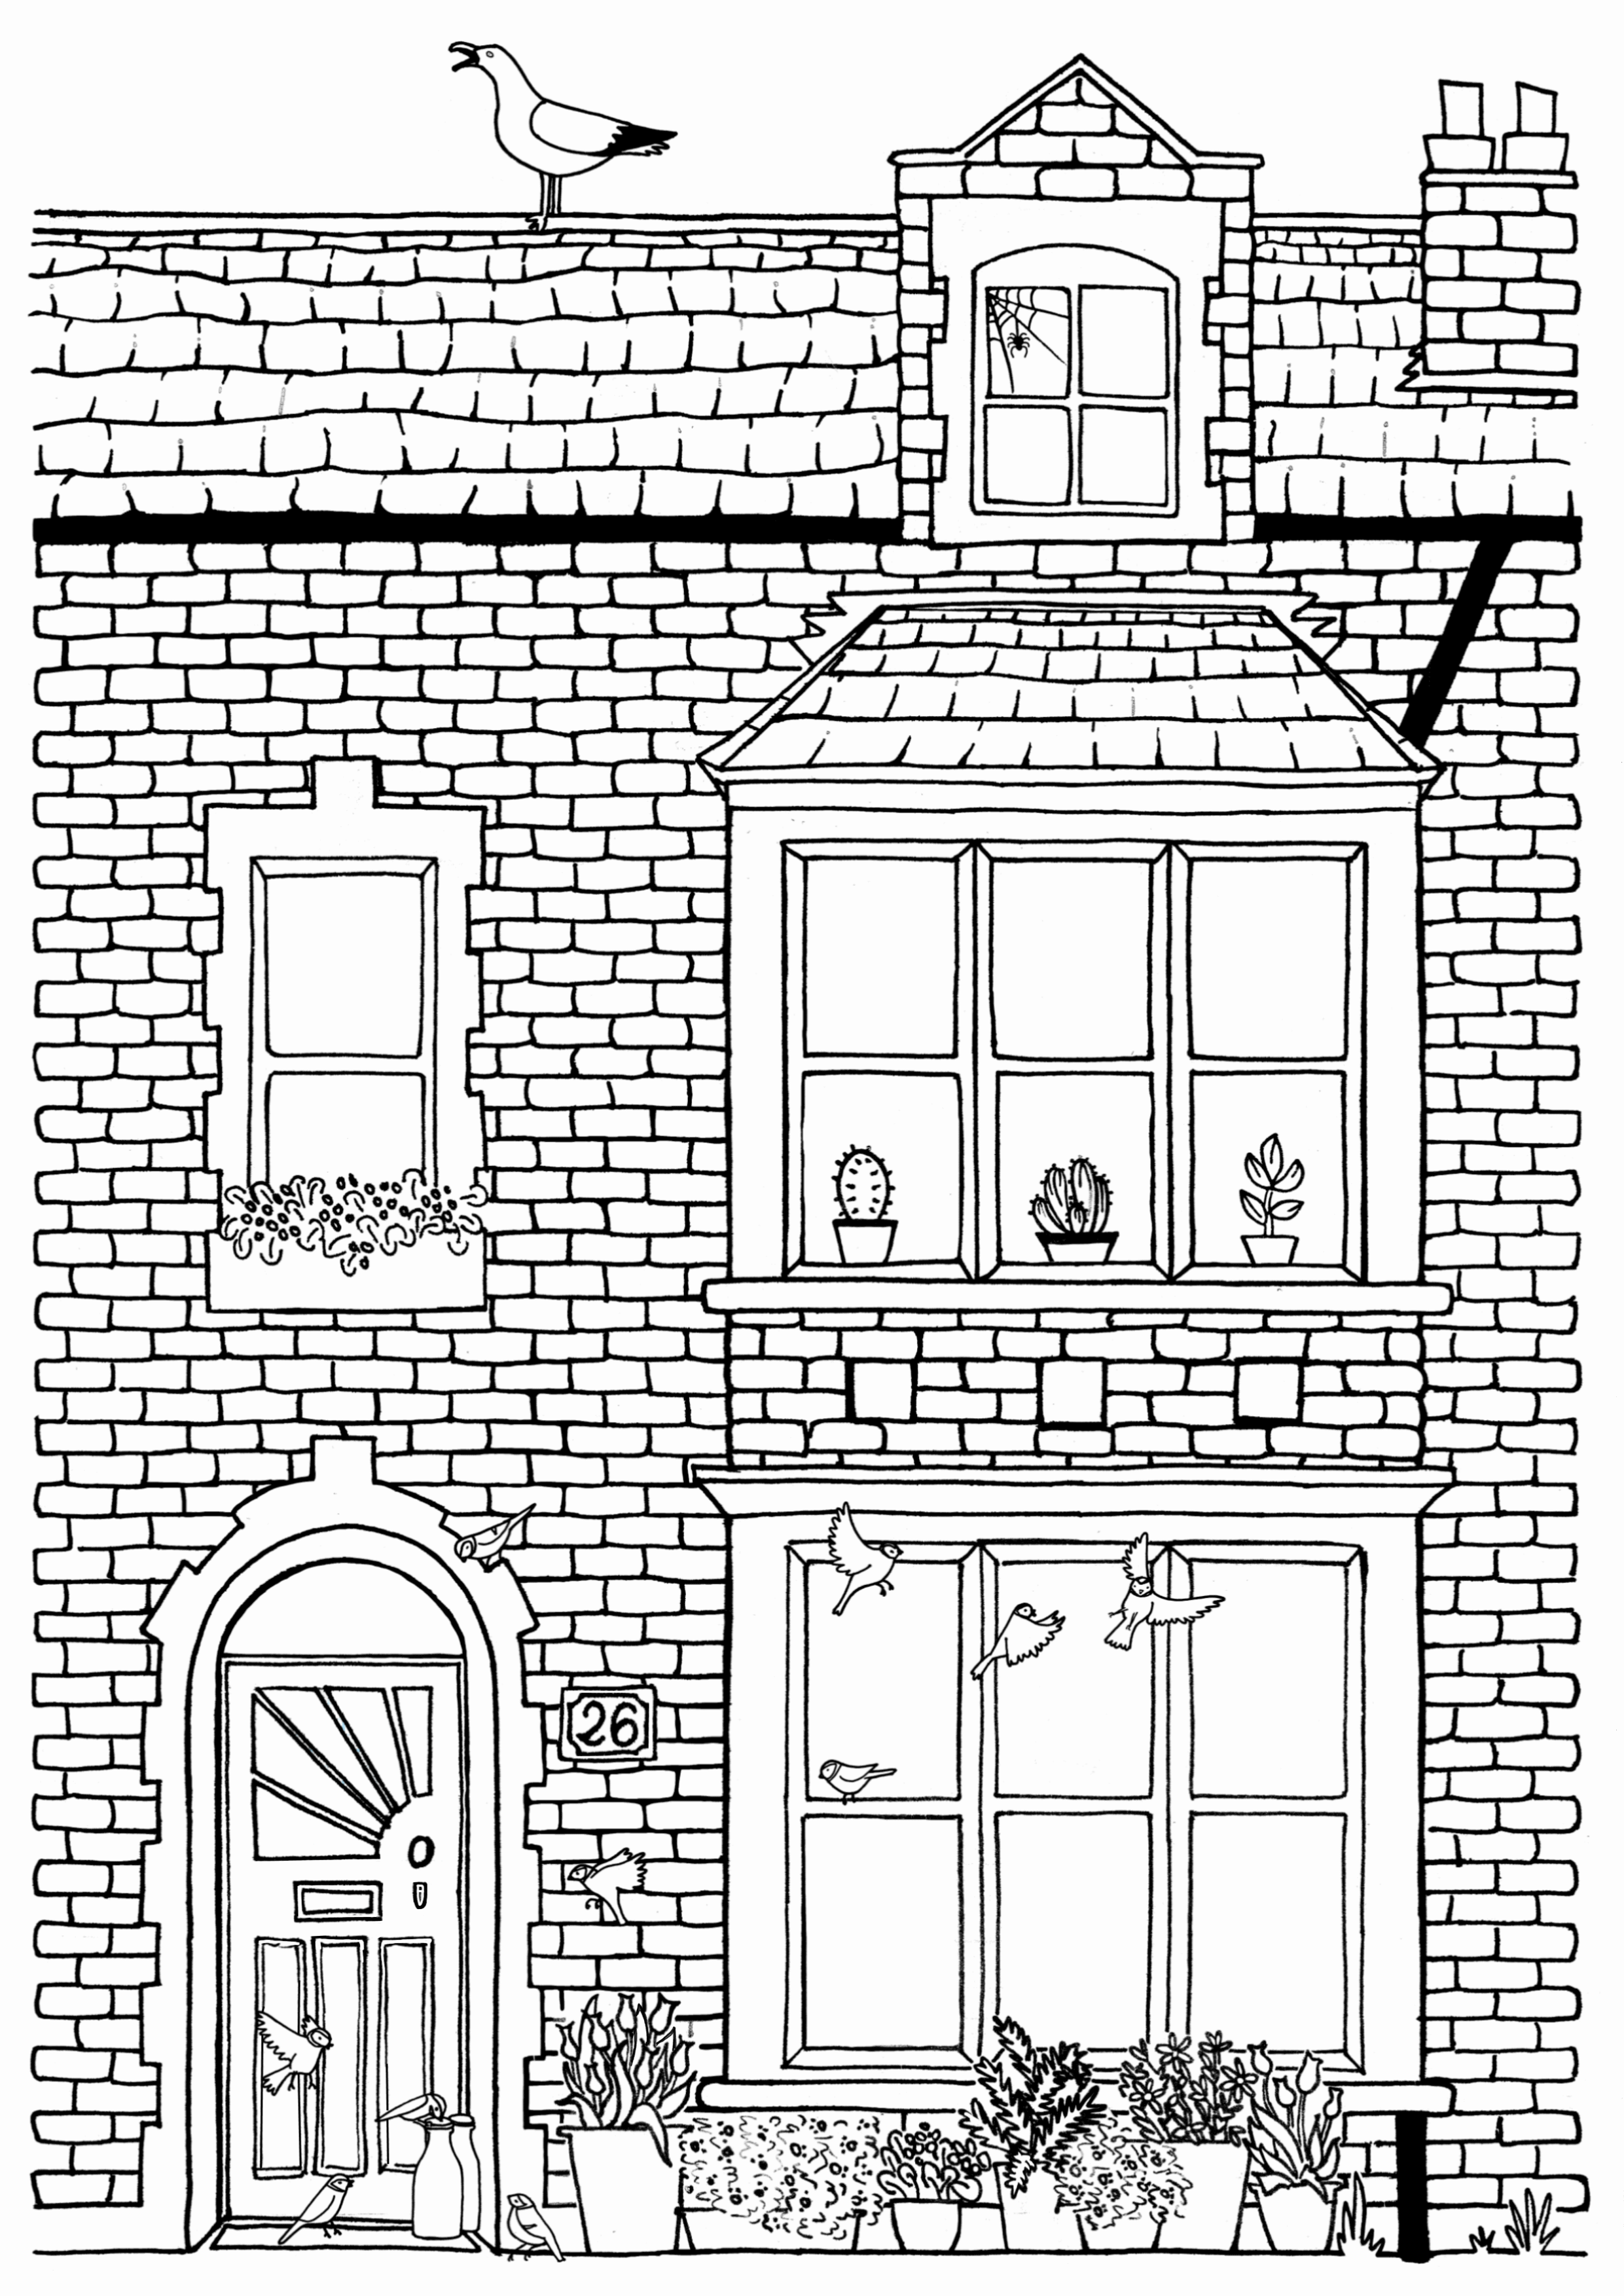 House Colouring Page No 26 Line Drawing Download Print Colour Play In 2020 House Colouring Pages Coloring Pages Victorian Terrace House